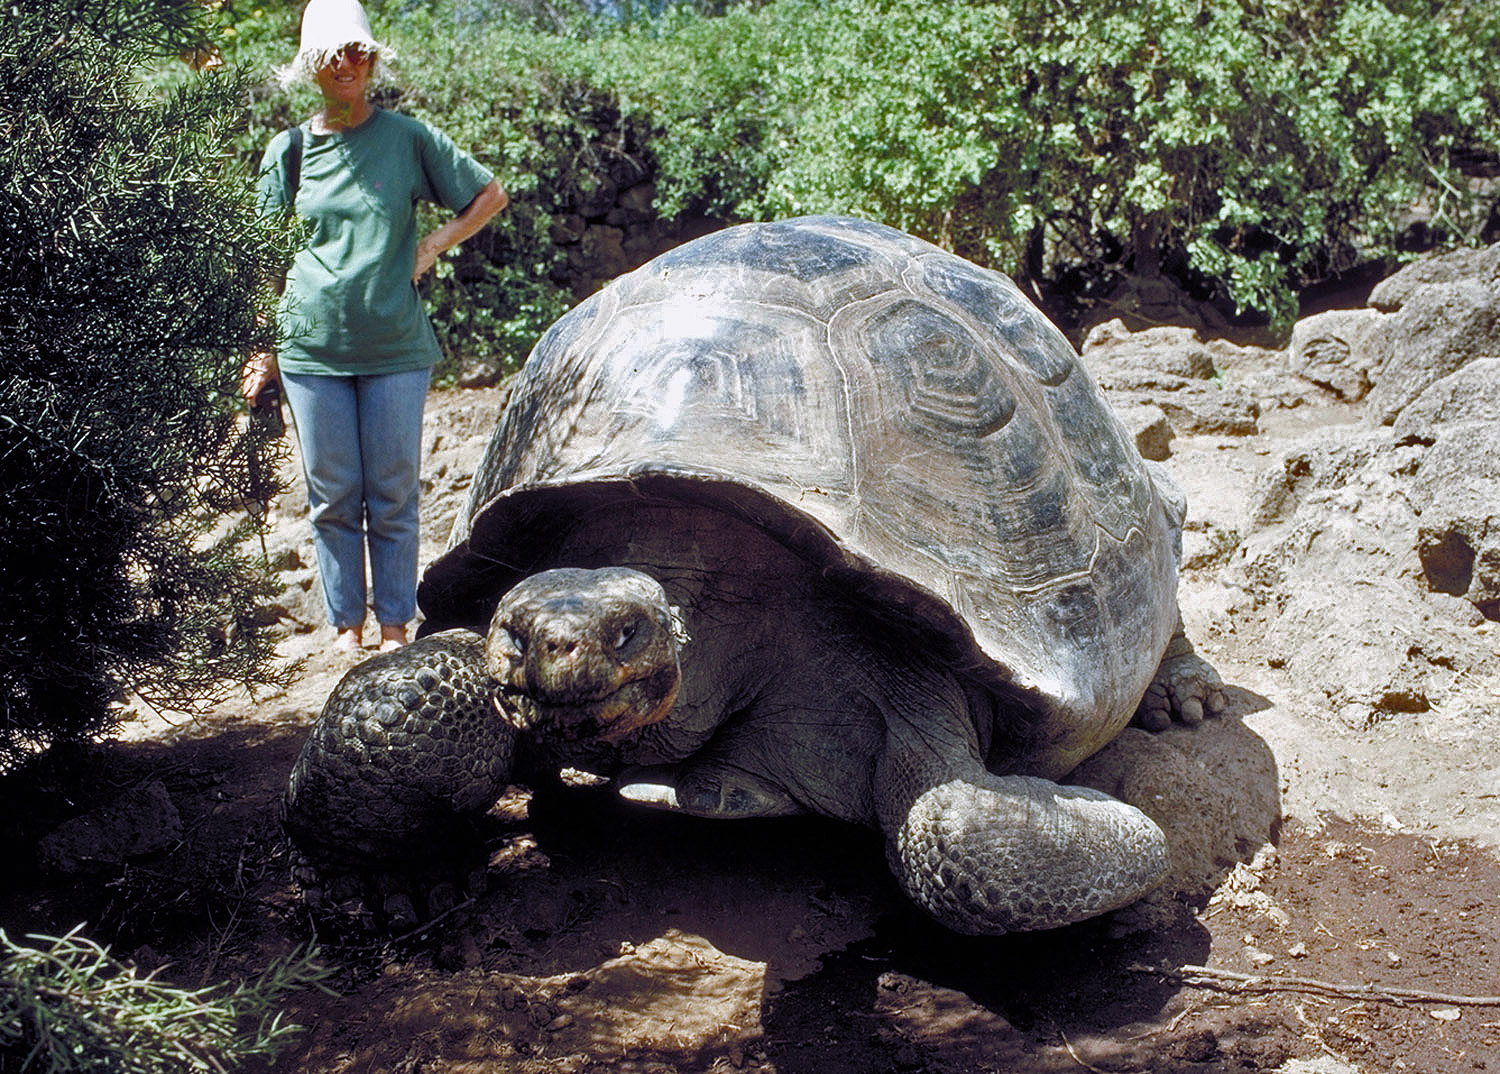 You Won't Find These Animals Anywhere Else In The World |Galapagos Tortoise